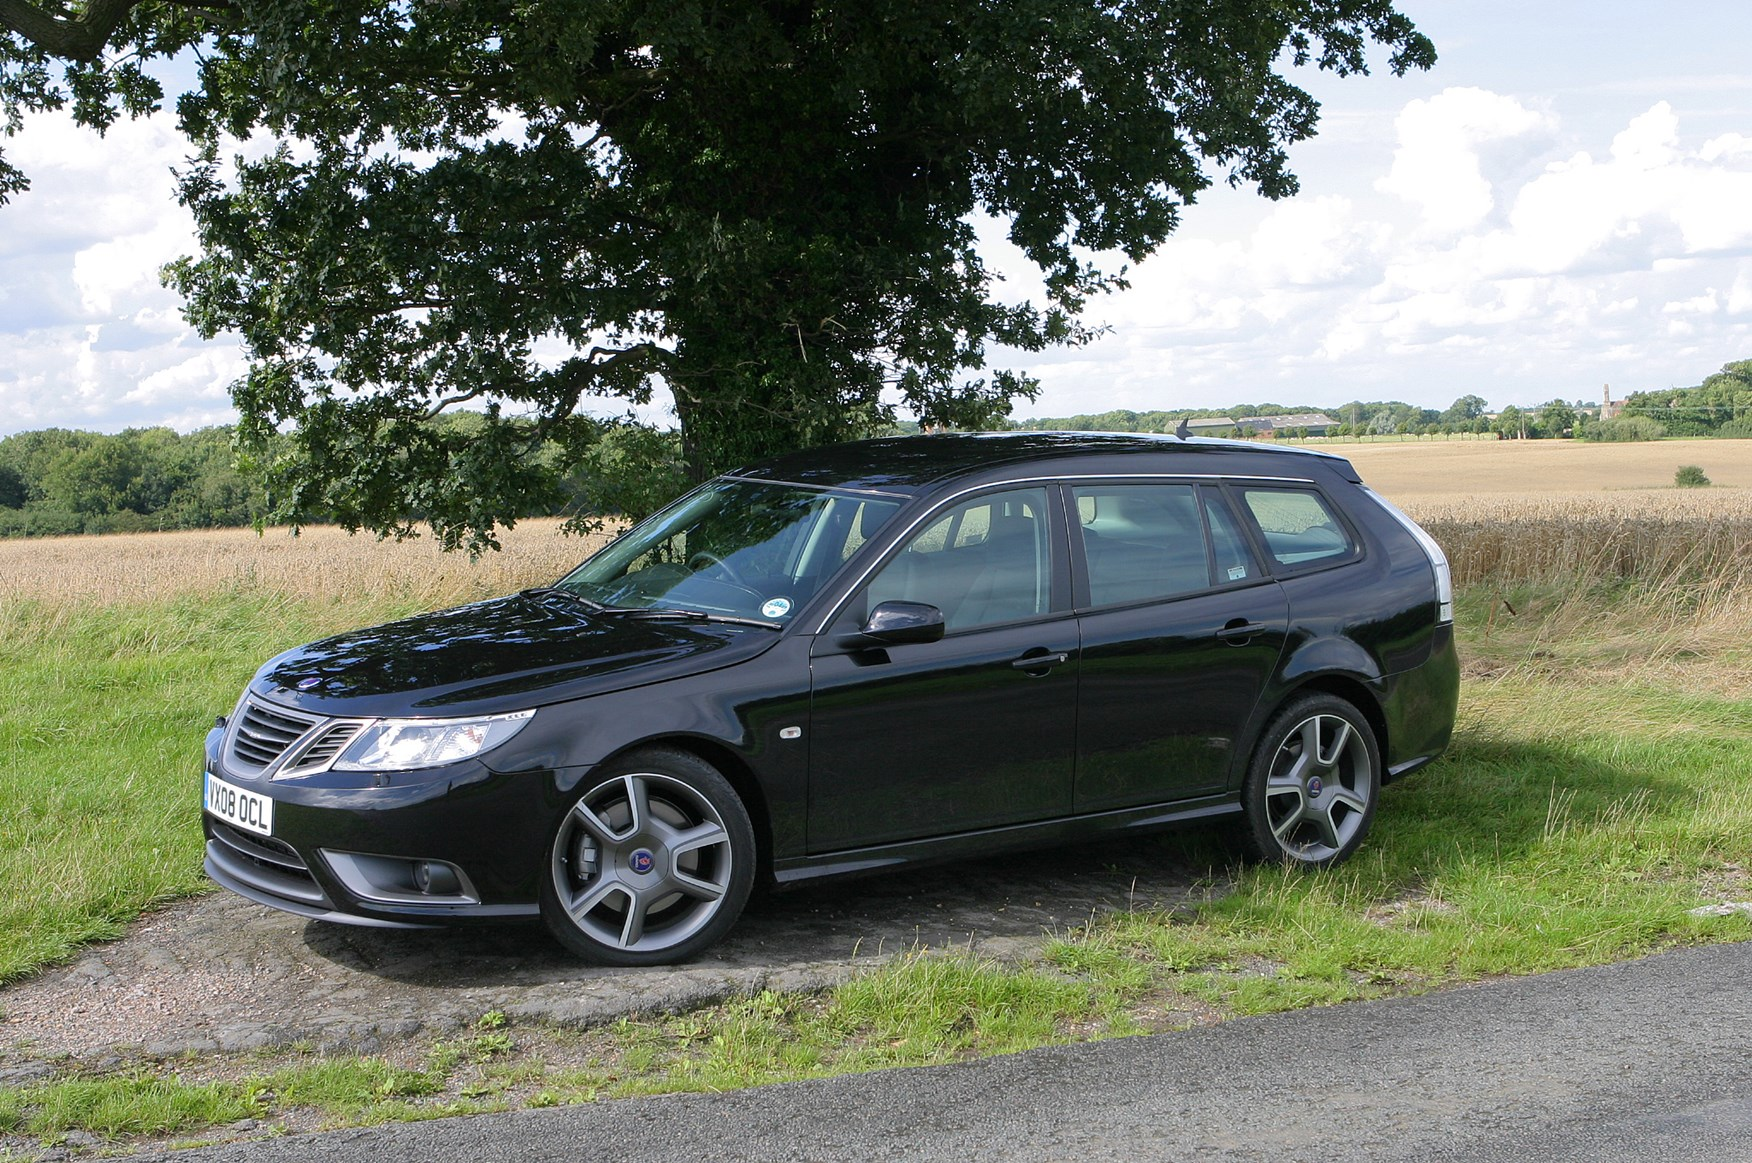 Used Saab 9-3 Sportwagon (2005 - 2011) Engines | Parkers